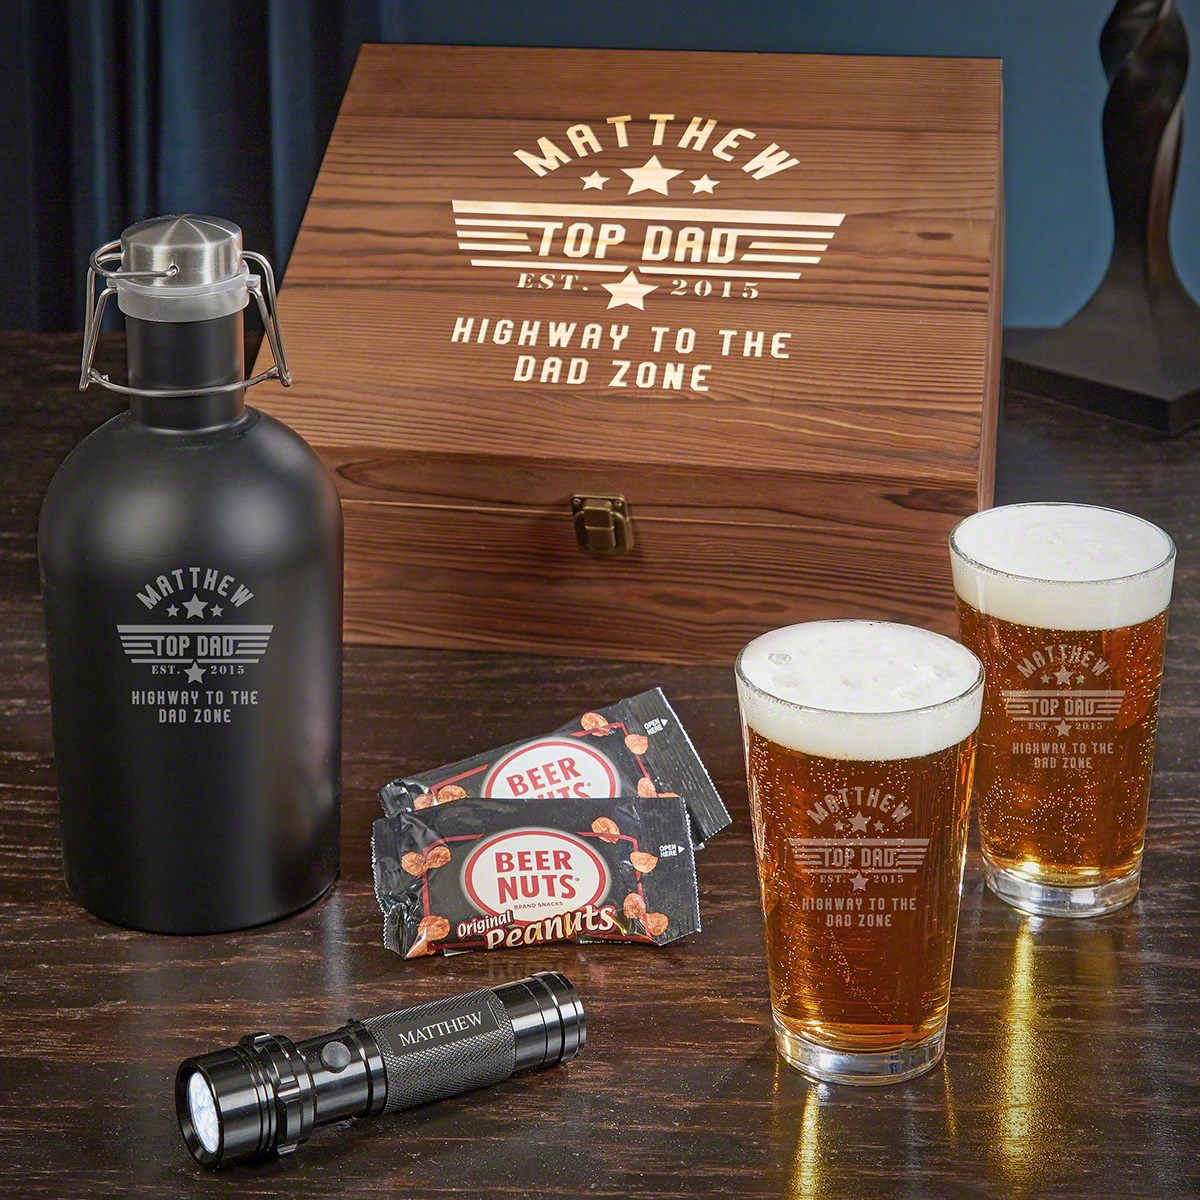 Top Dad Beer Box Set of Engraved Gifts for Dad